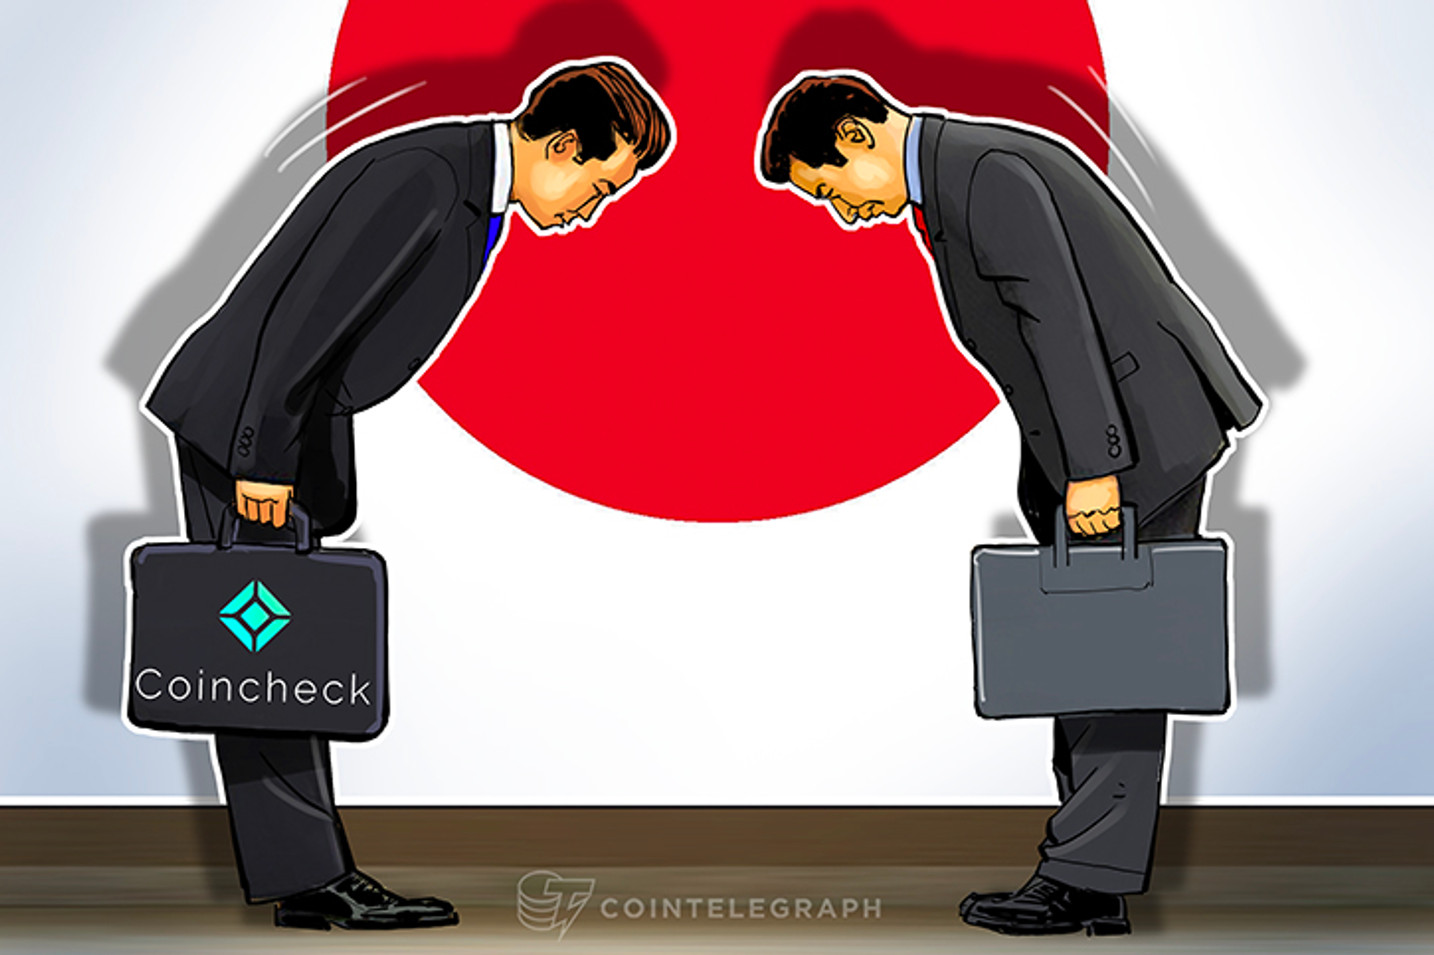 Coincheck To Refund All Customers Affected By Hack, Faced By Community Support